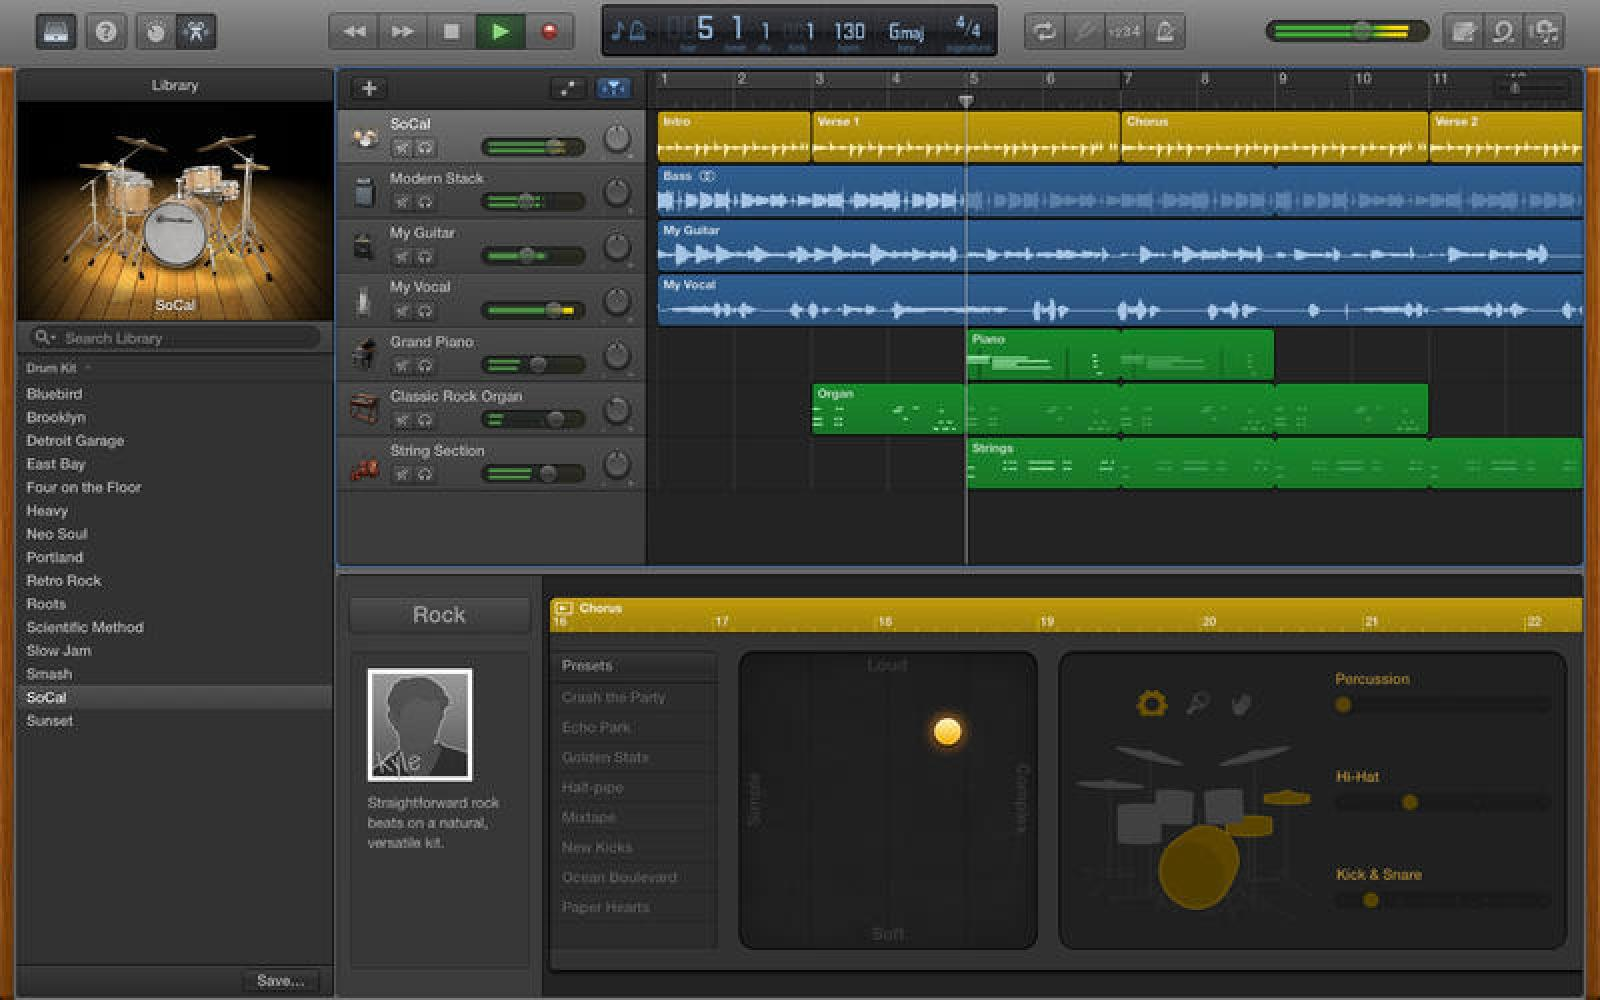 Apple updates iMovie and GarageBand for OS X Yosemite with new features and design